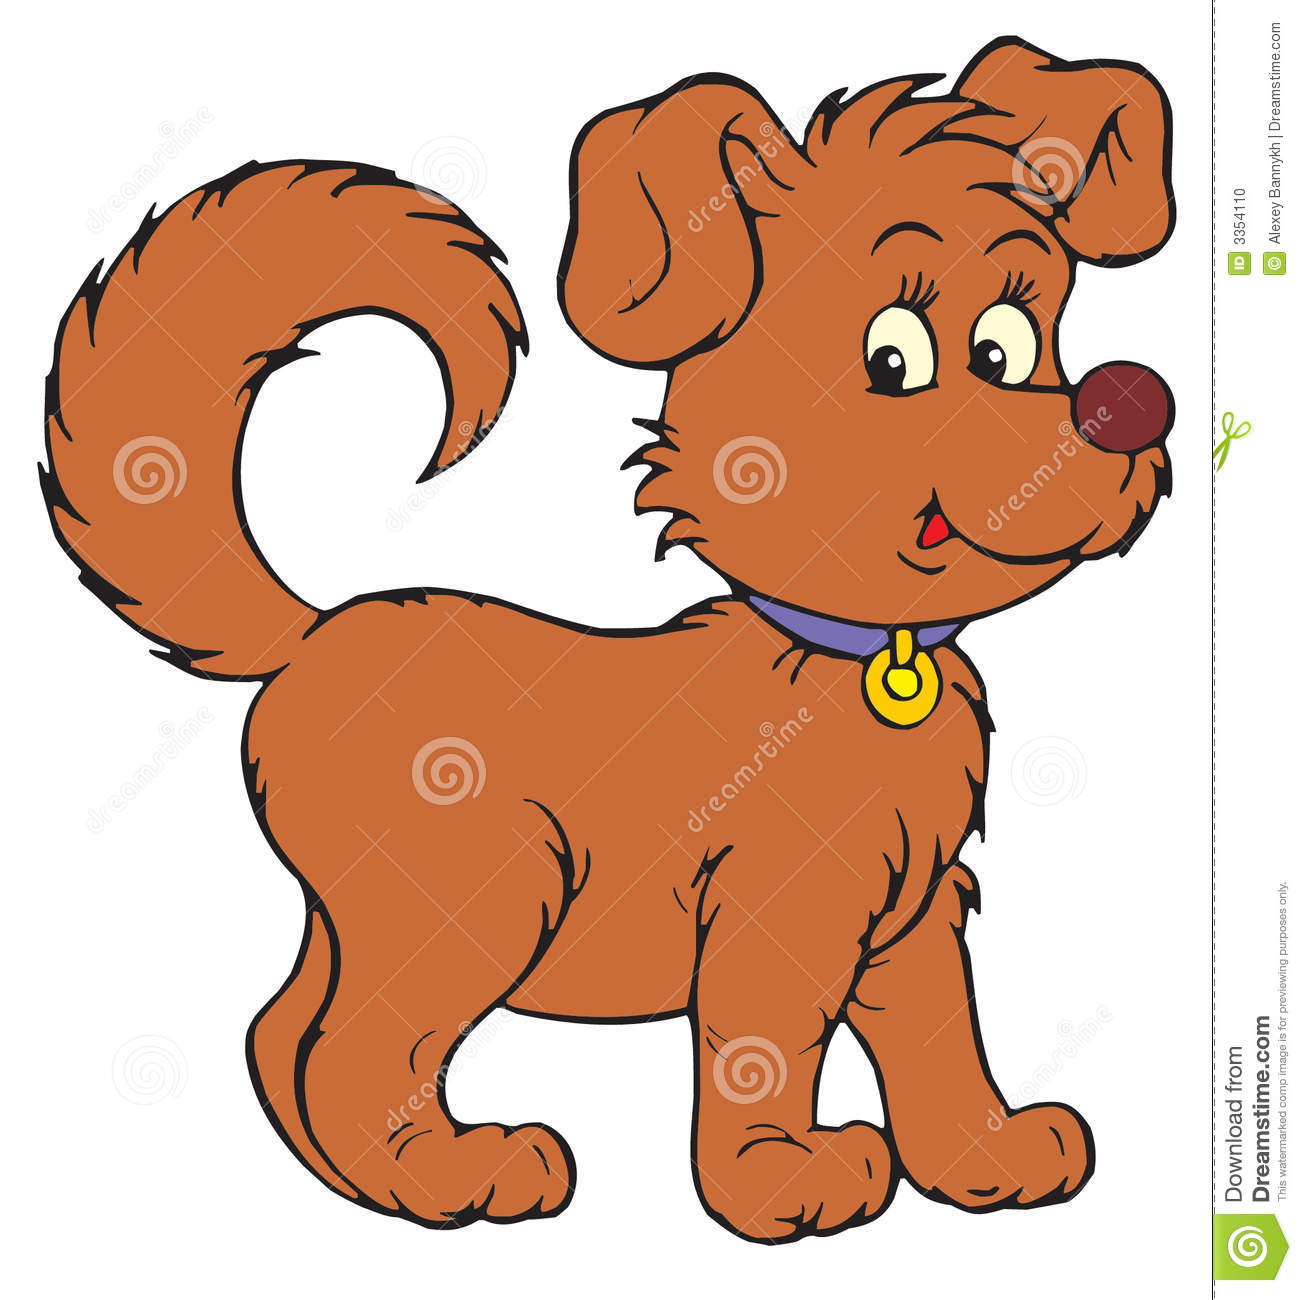 Dogs Clip Art Images.